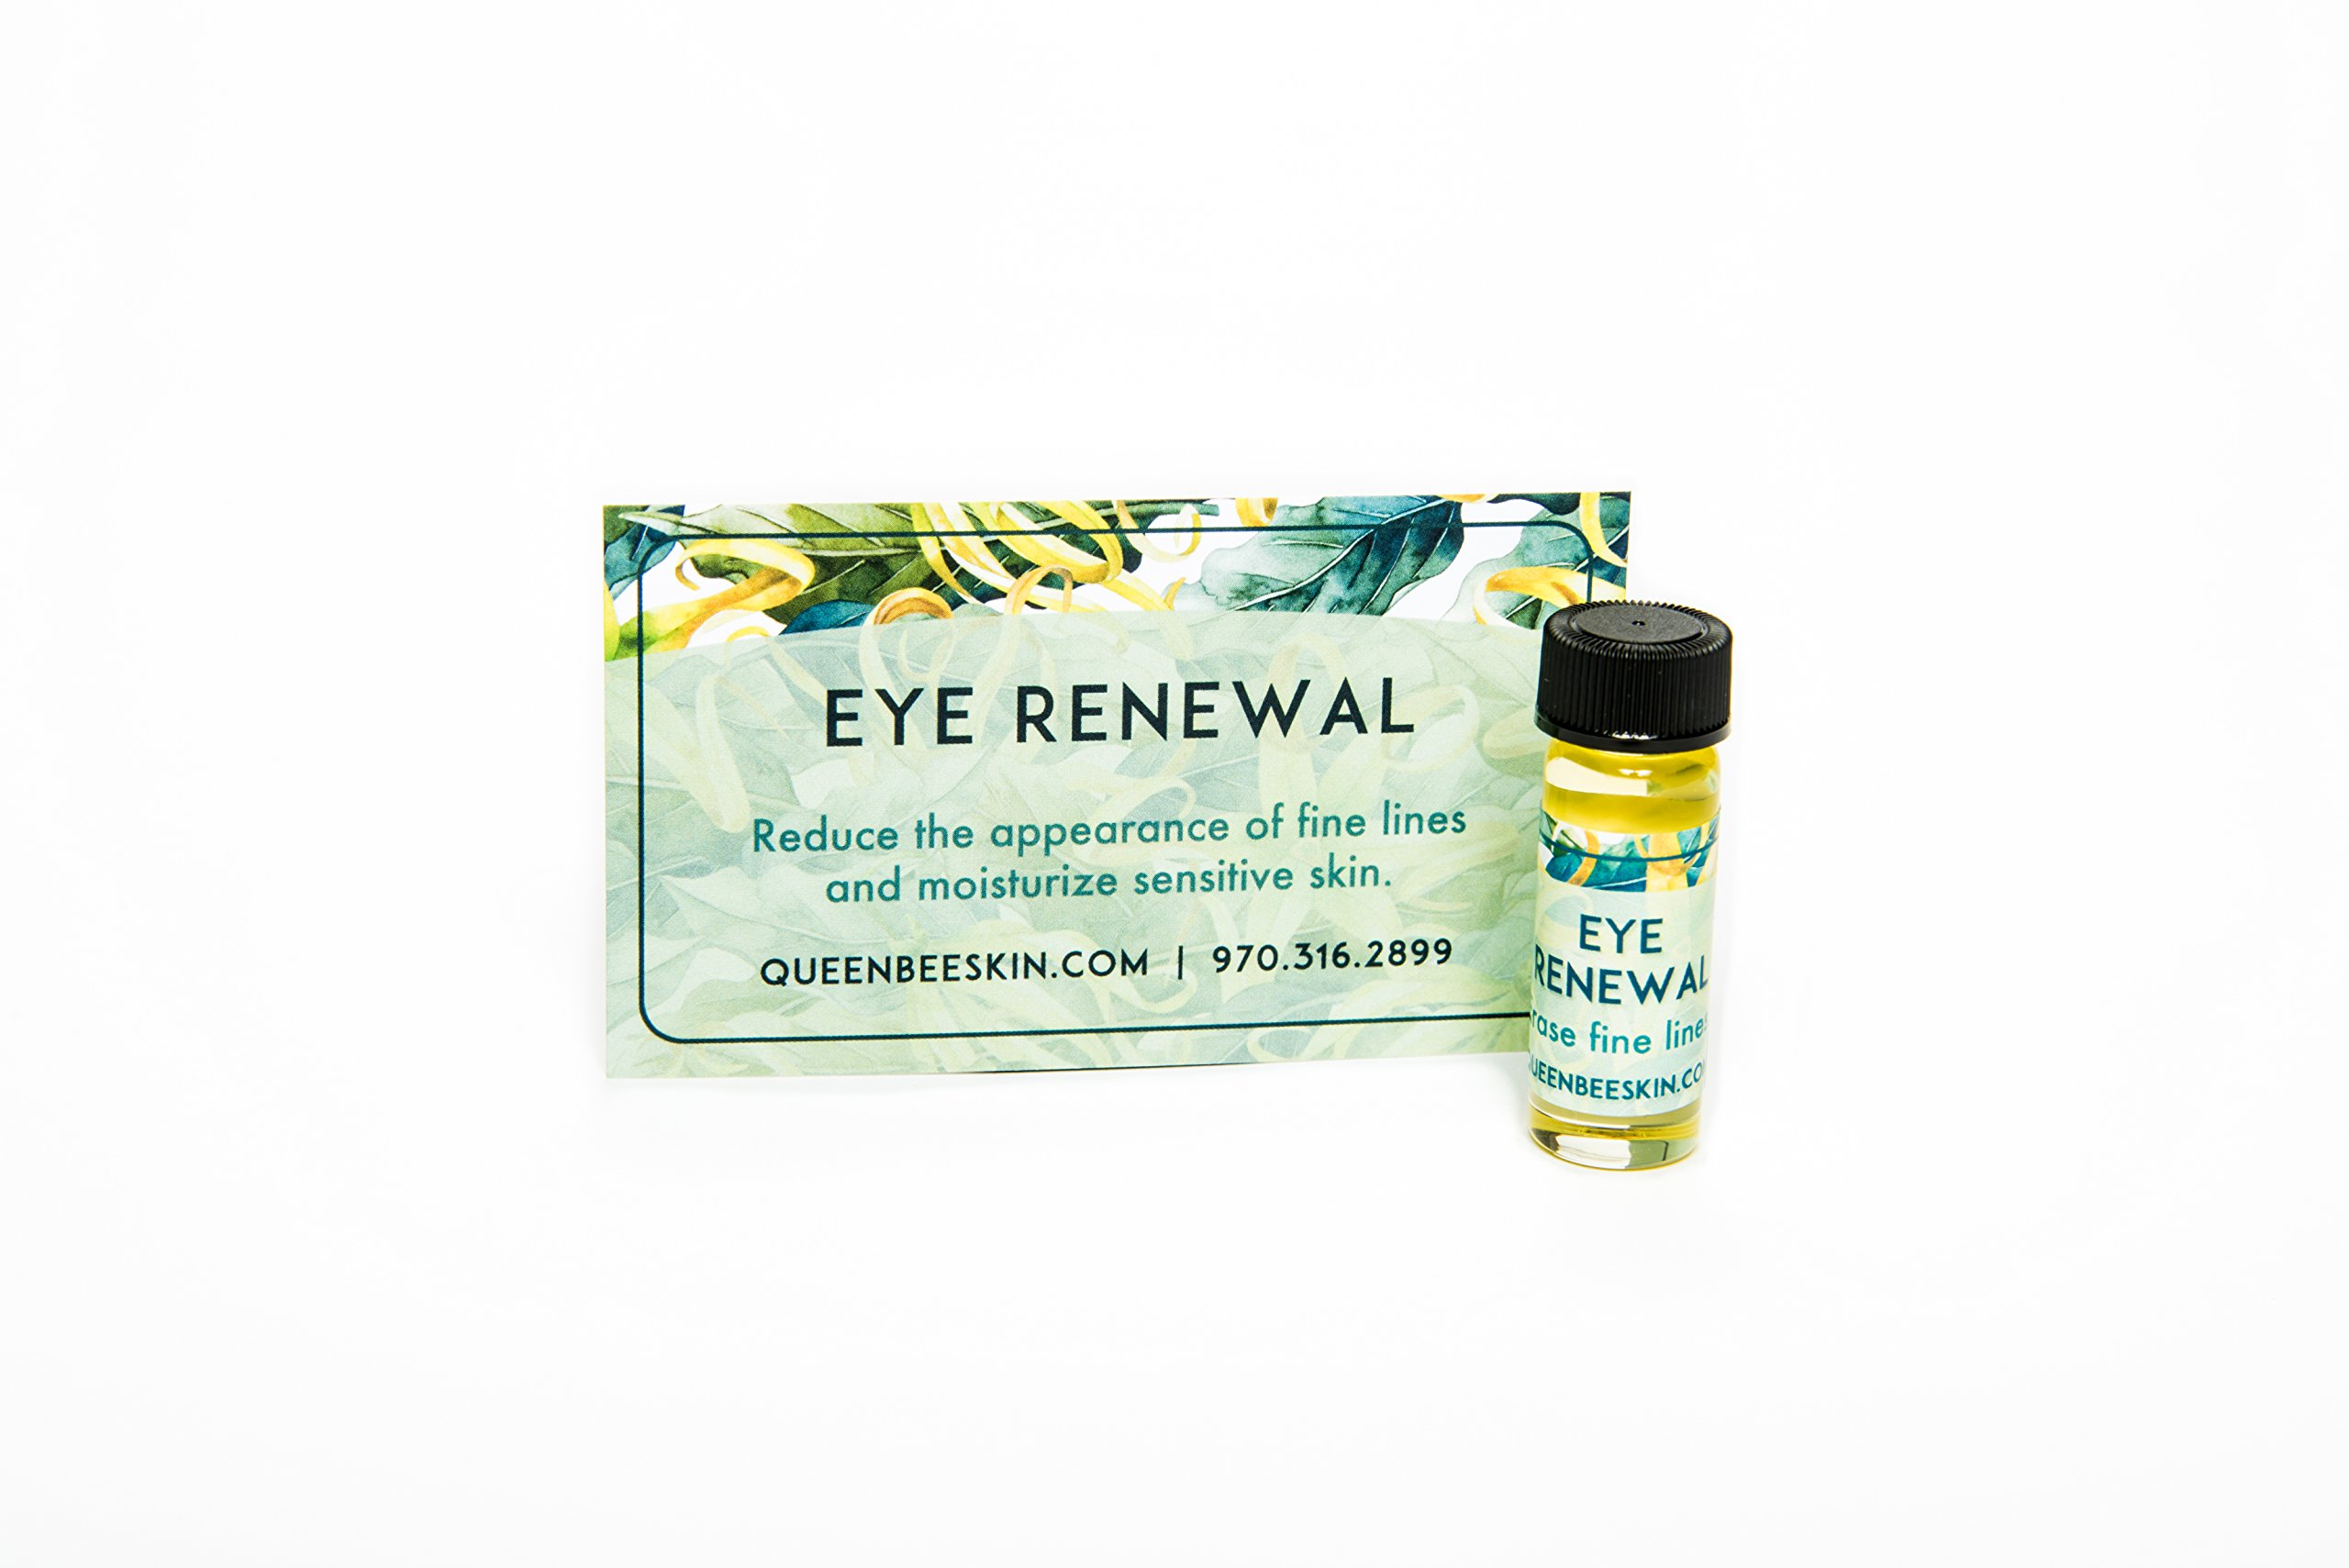 24 Hour Organic Eye Renewal Serum Noticeable Reduces Fine Lines Right Away from Queen Bee